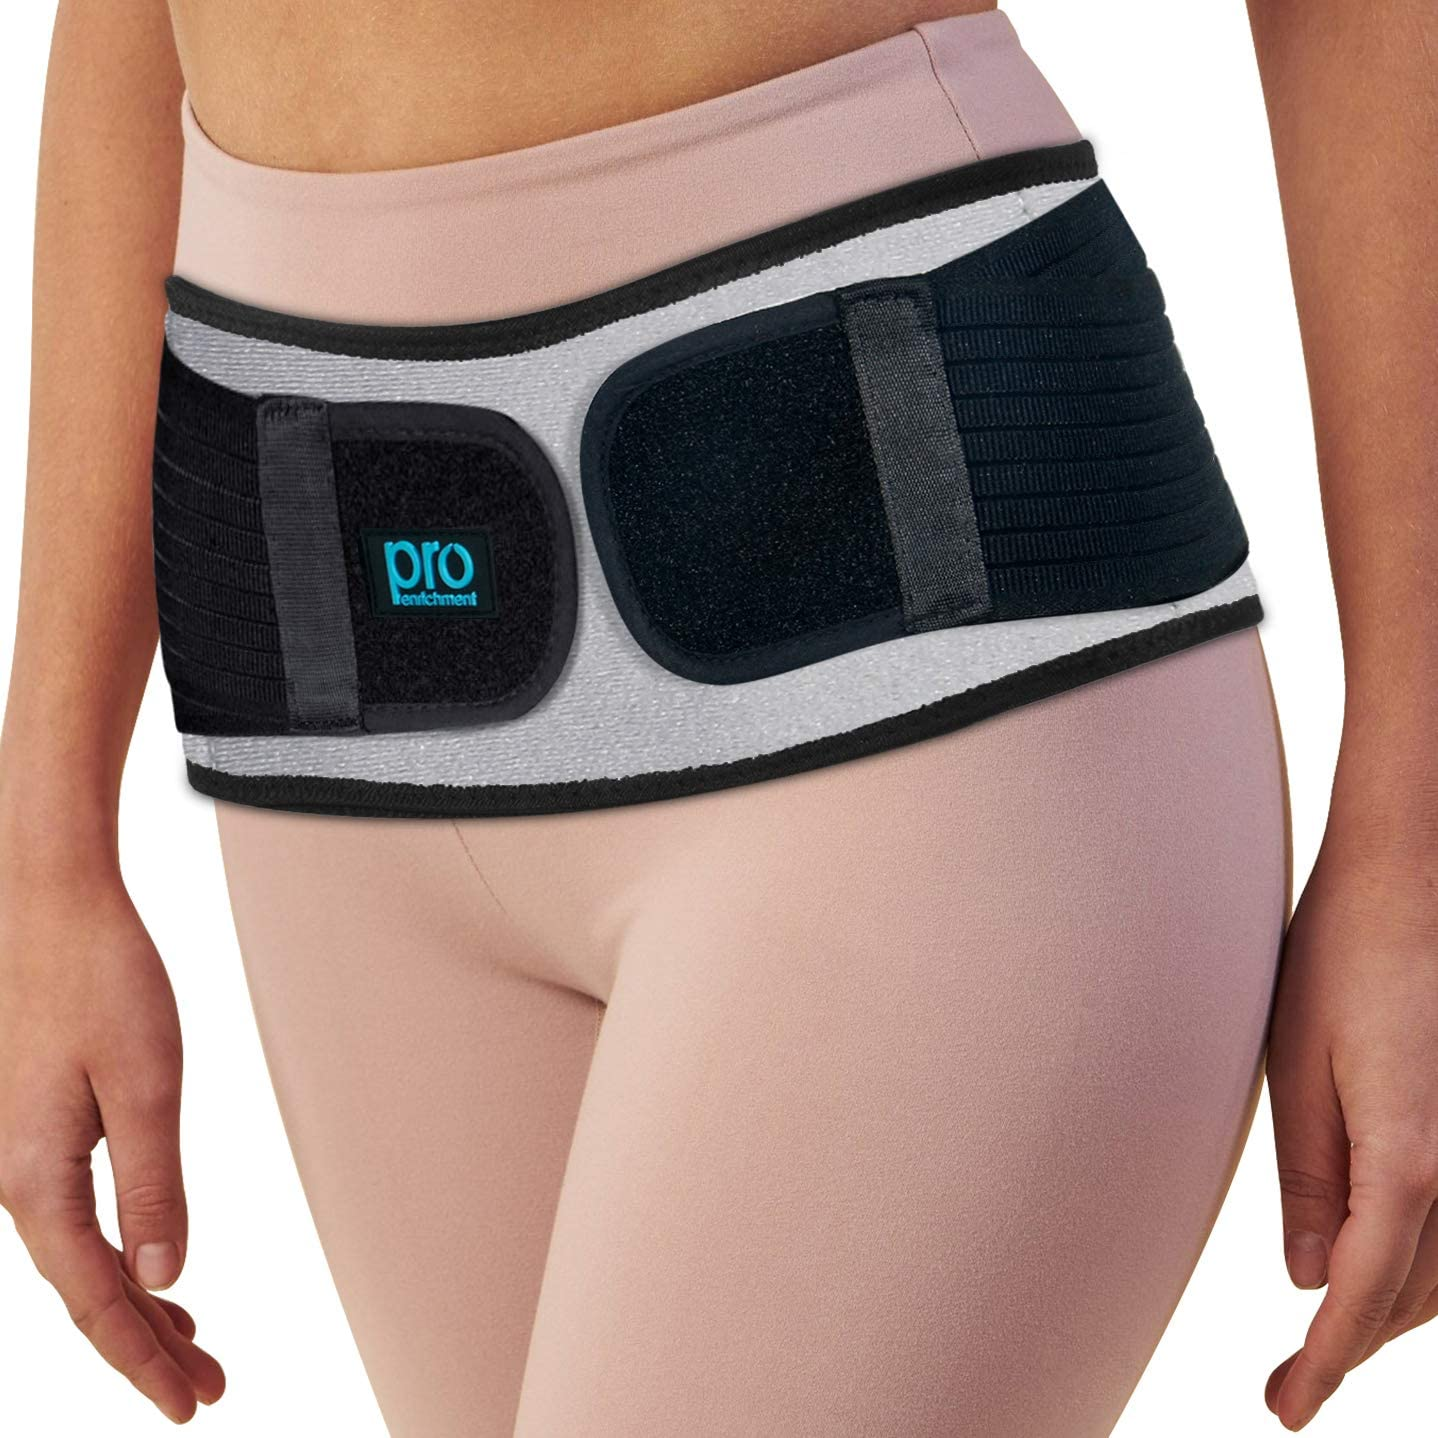 Sacroiliac Hip Belt for Women & Men That Alleviate Sciatica, Lower Back & Lumbar Pain Relief. Diamond Back Brace Provides SI Joint Pelvic Support Nerve Compression & Stability Anti-Slip (Regular Size): Health & Personal Care